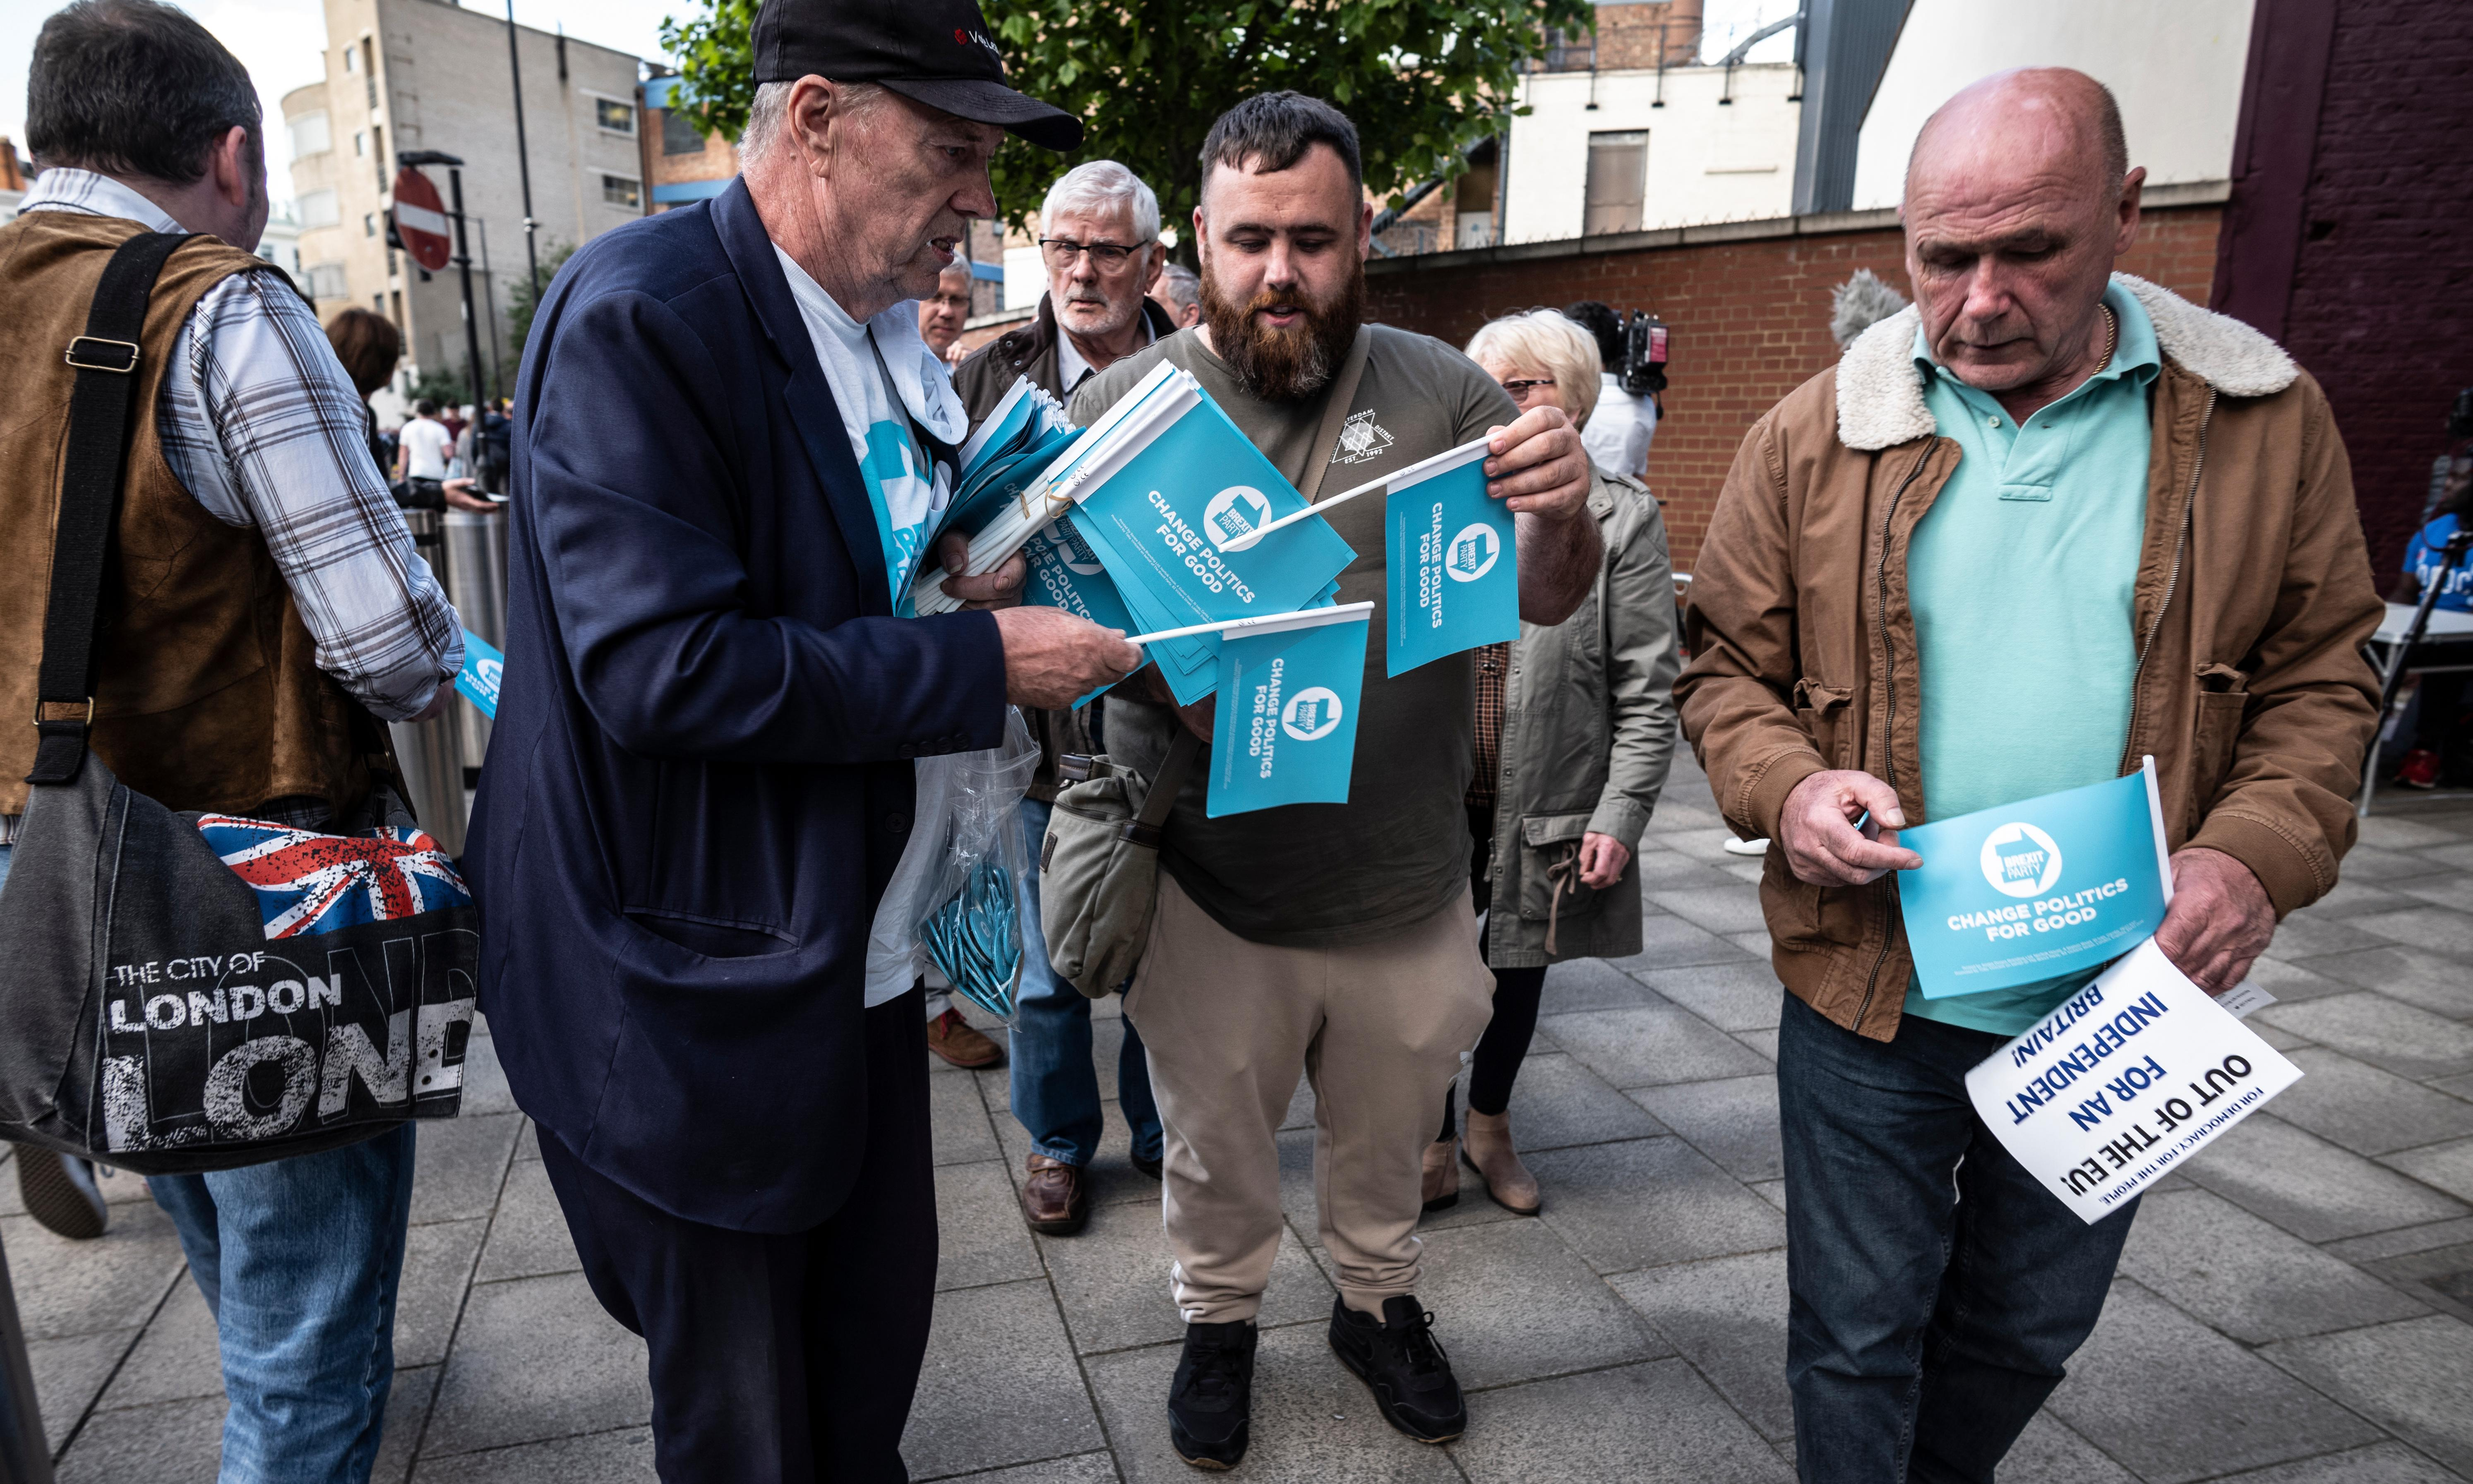 Change UK, Brexit party and Lib Dems in last appeal before European elections